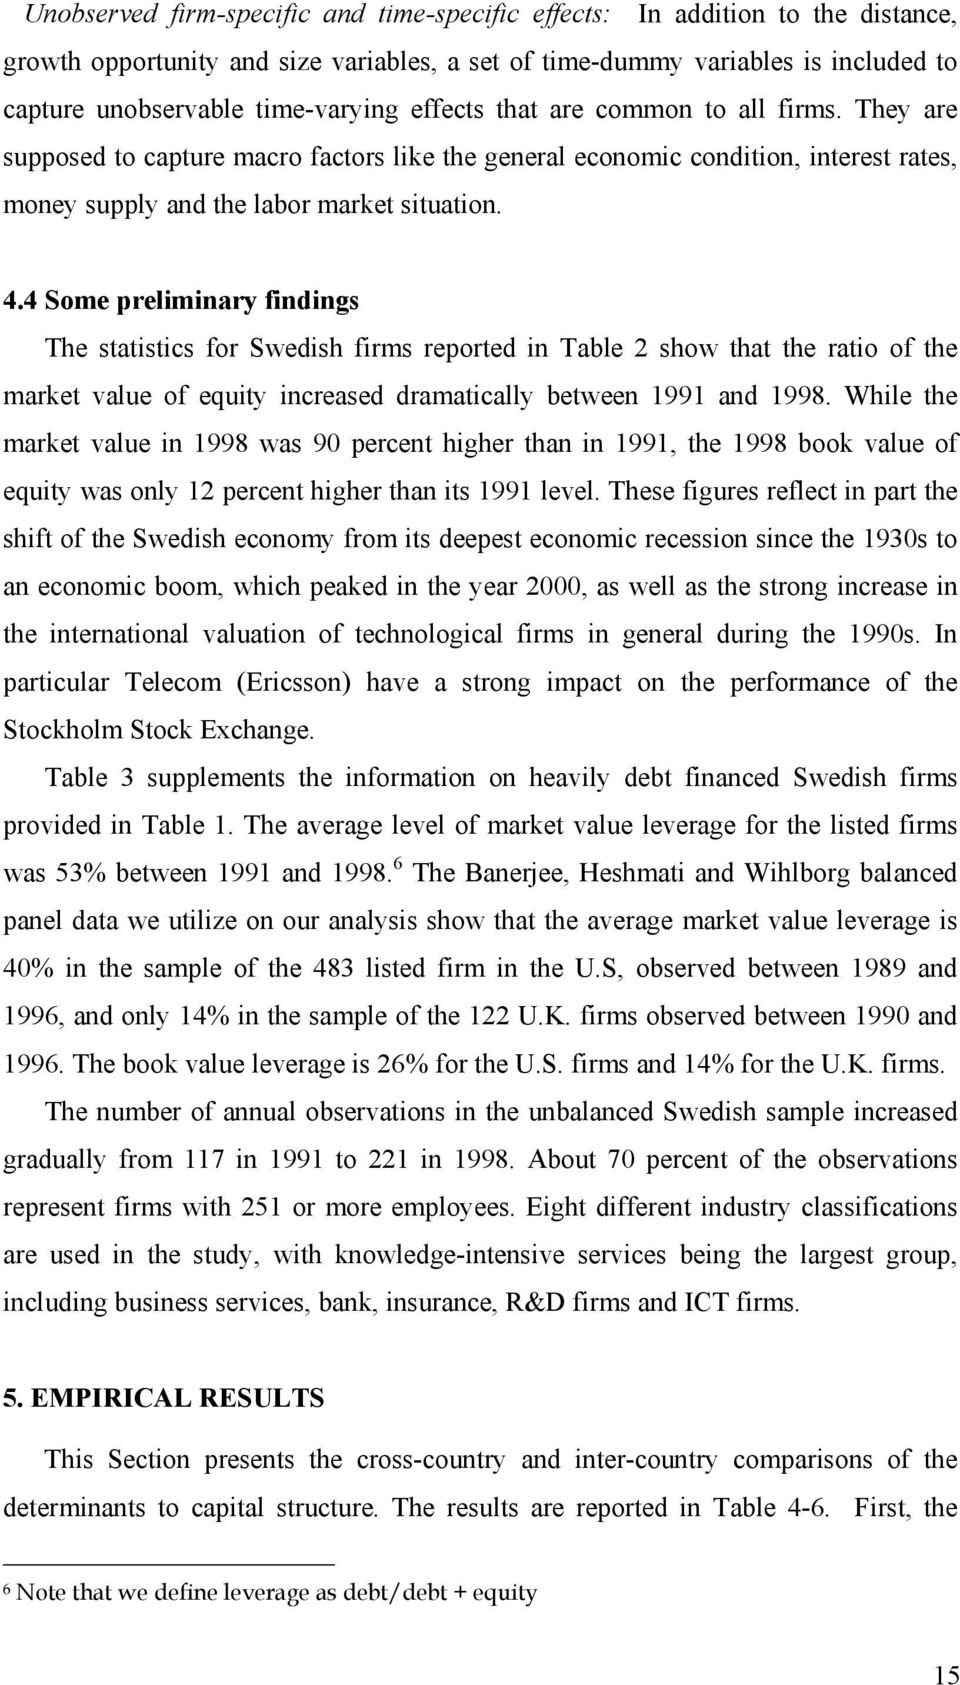 4 Some preliminary findings The statistics for Swedish firms reported in Table 2 show that the ratio of the market value of equy increased dramatically between 1991 and 1998.